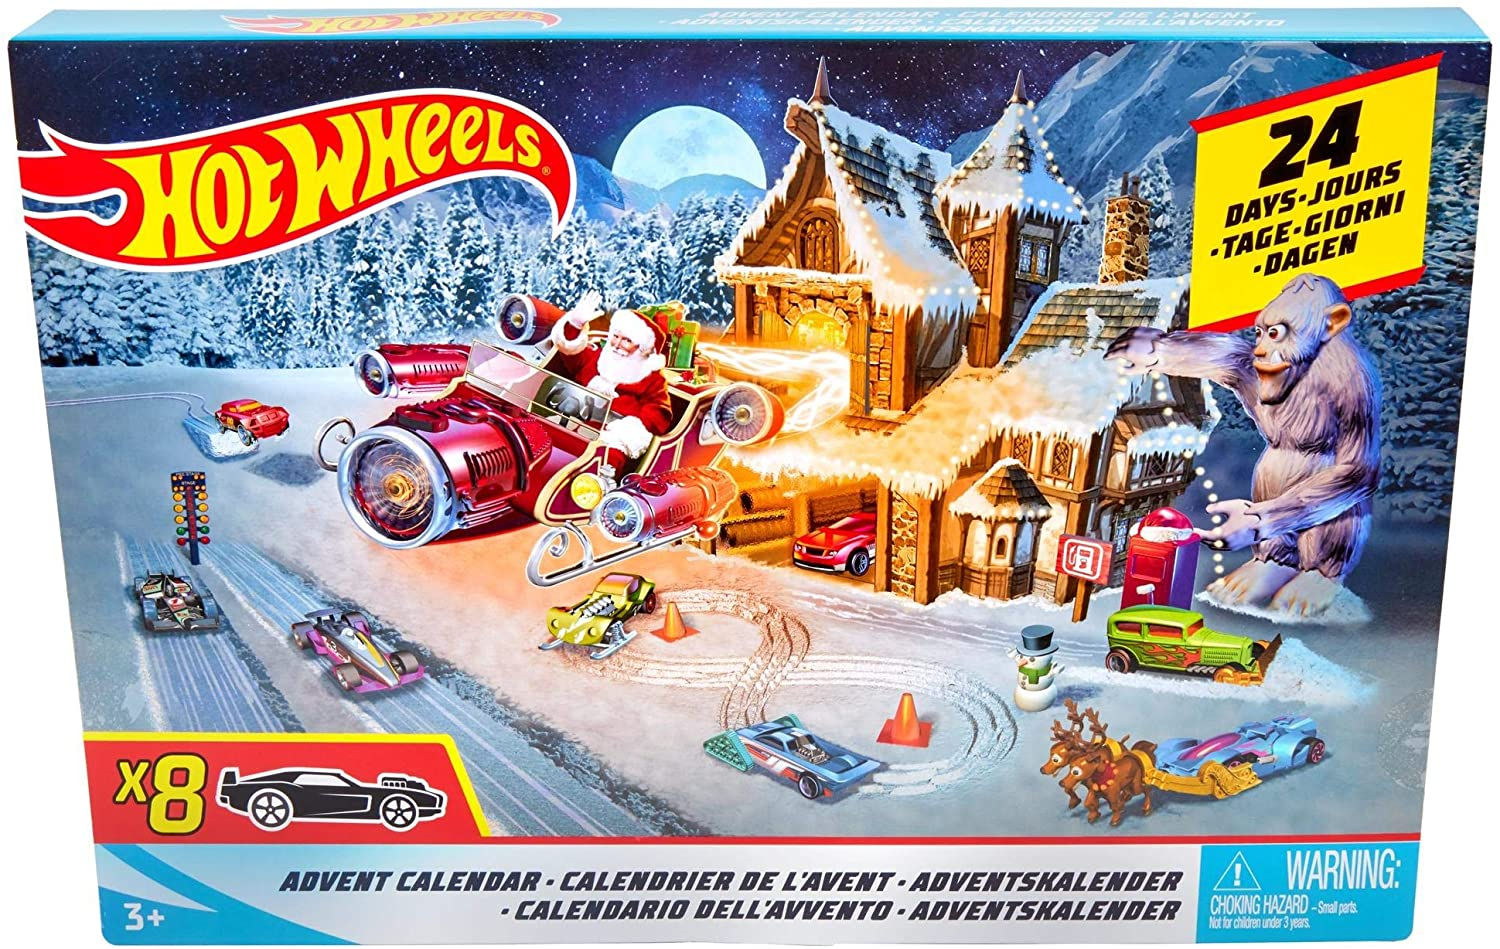 Hot Wheels Calendario De Adviento, con coches de juguete y ...